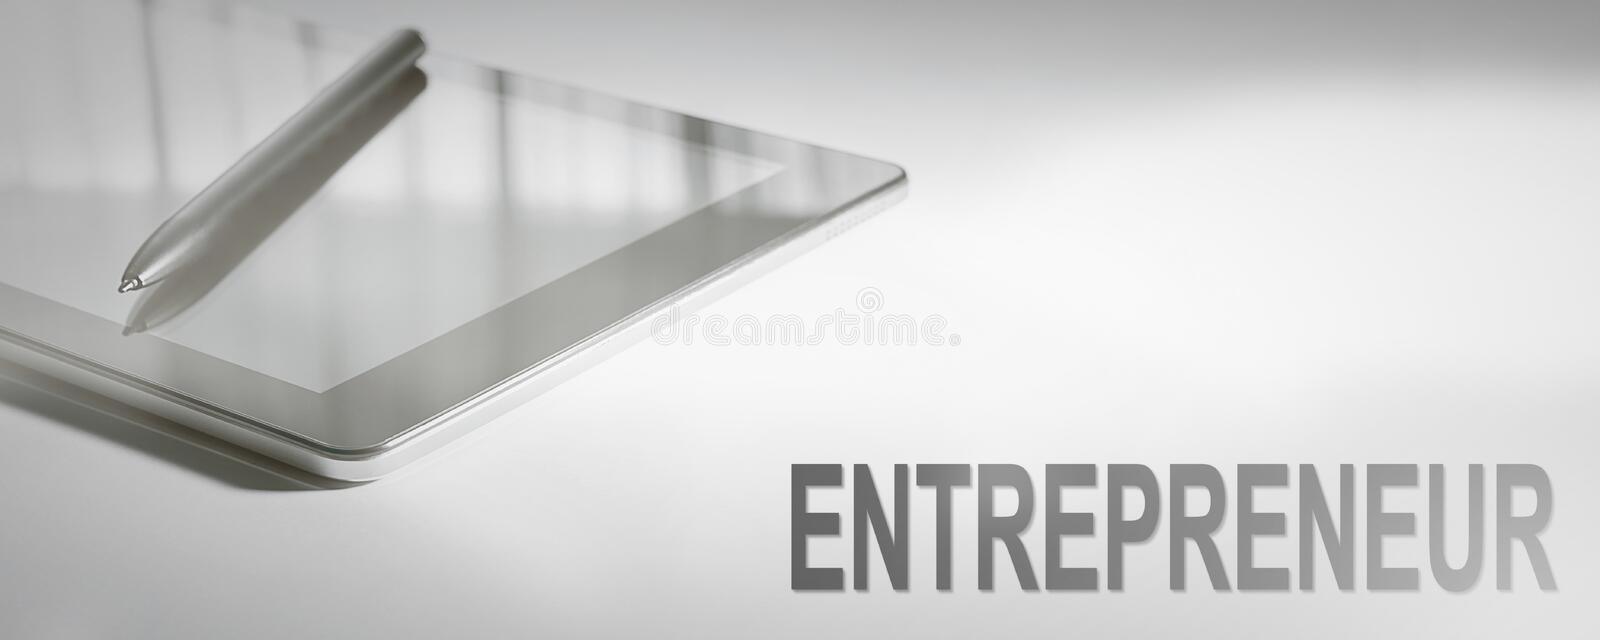 ENTREPRENEUR Business Concept Digital Technology. royalty free stock photography